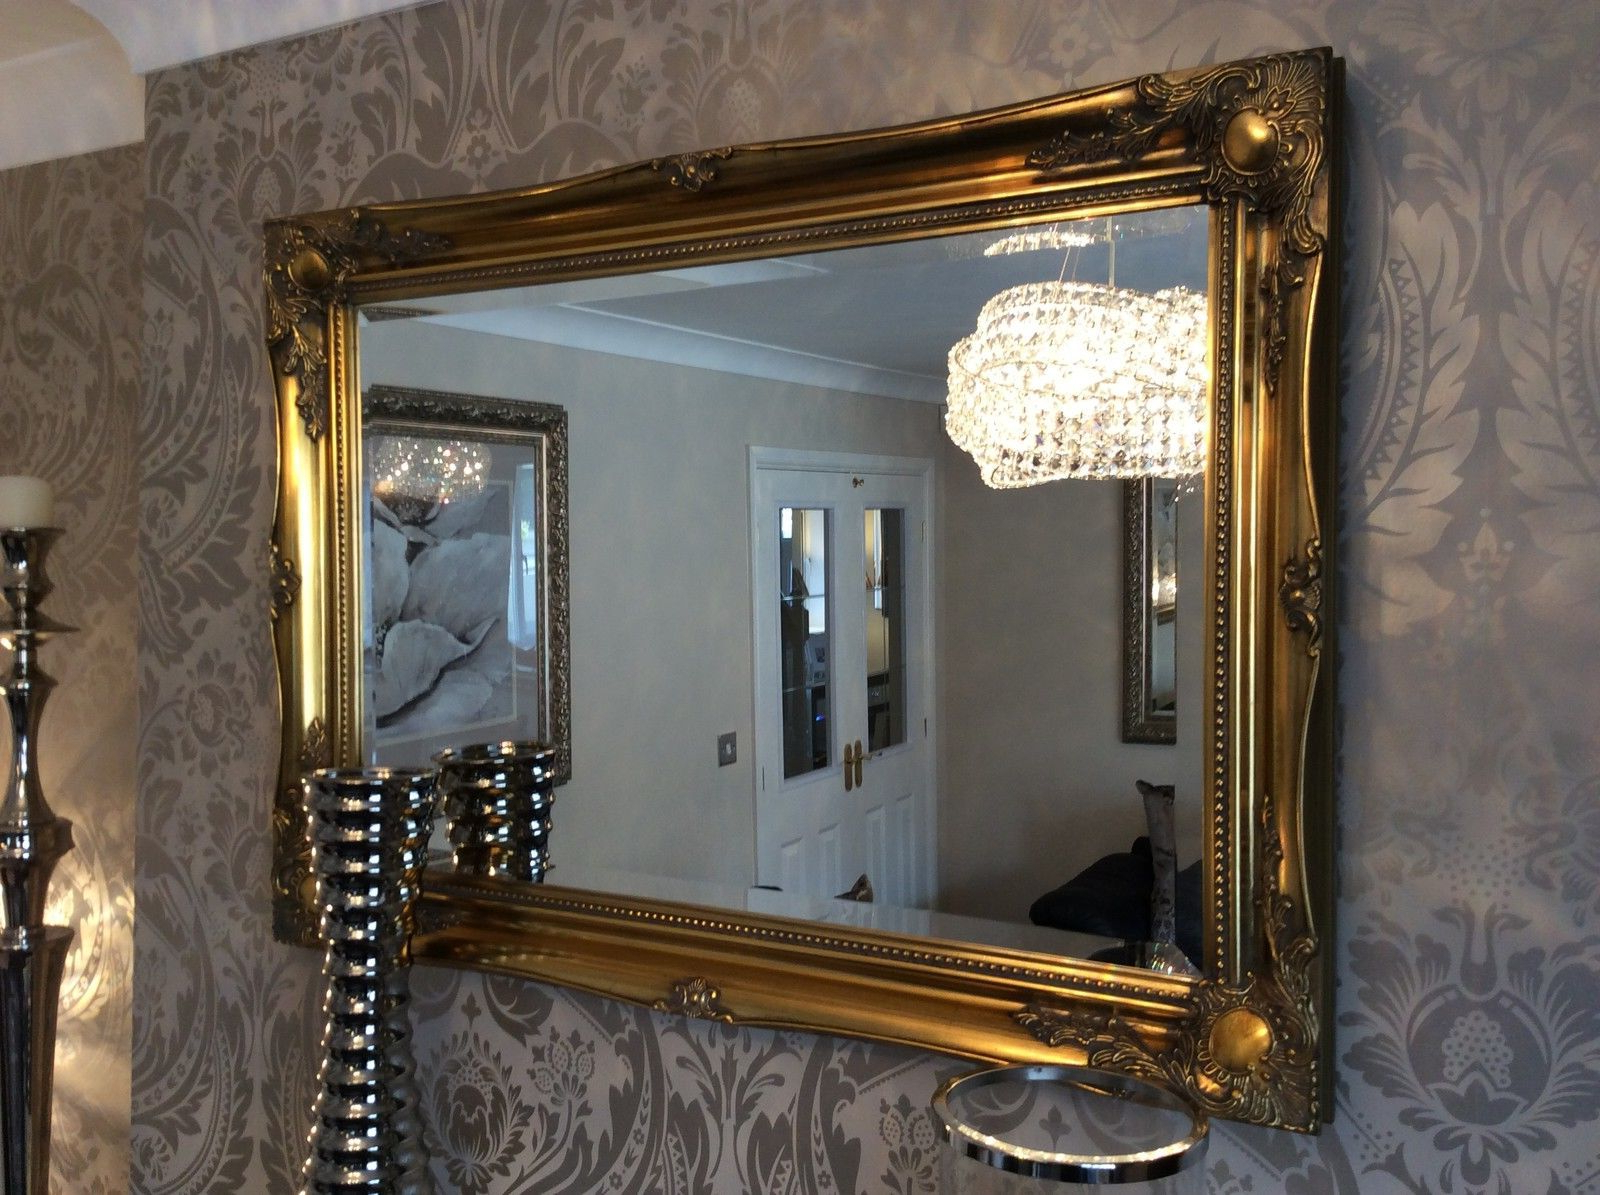 Trendy Large Antique Gold Decorative Ornate Stunning Mirror Savew ££S *new* With Regard To Large Elegant Wall Mirrors (View 18 of 20)